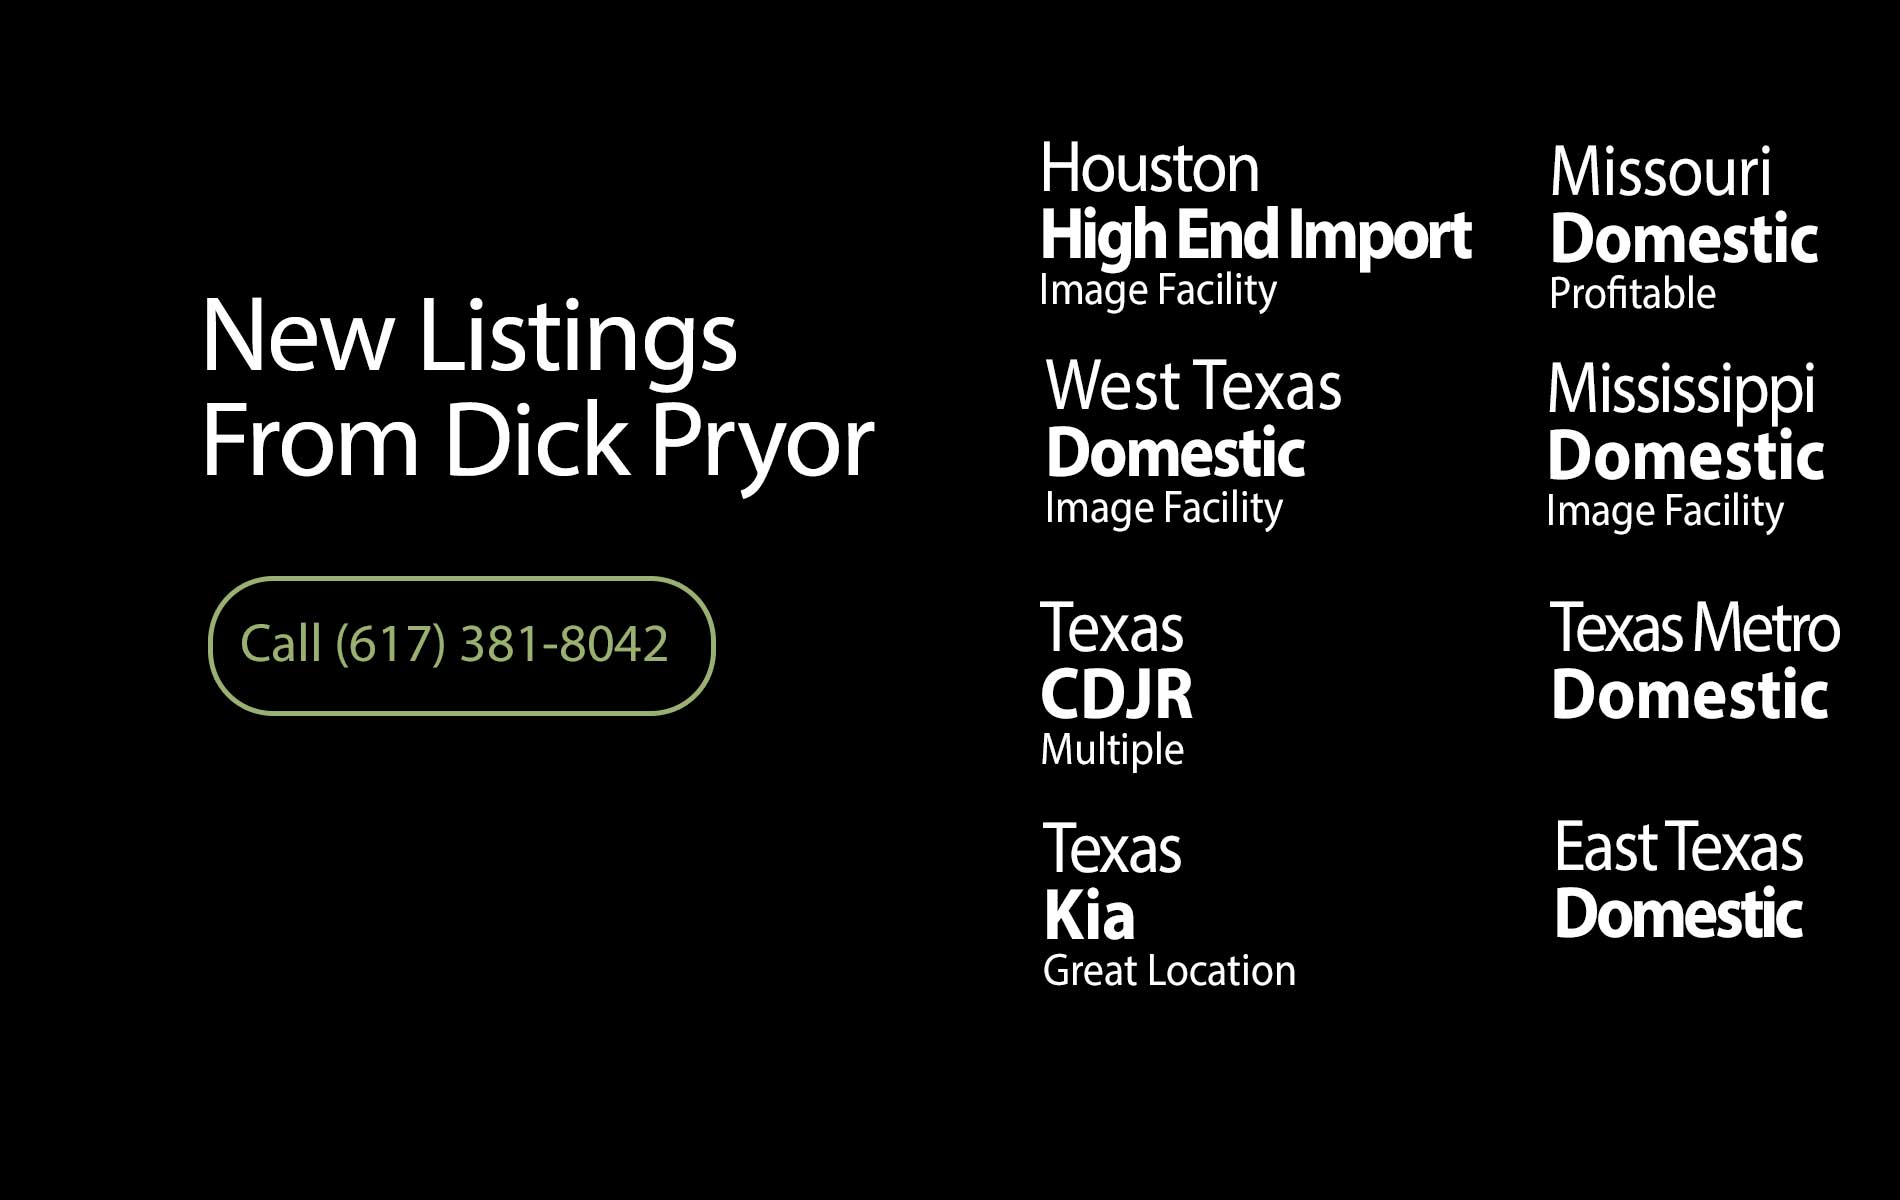 DICK-PRYOR-LISTING-7-15-2020-SHOWCASE-1900x1200